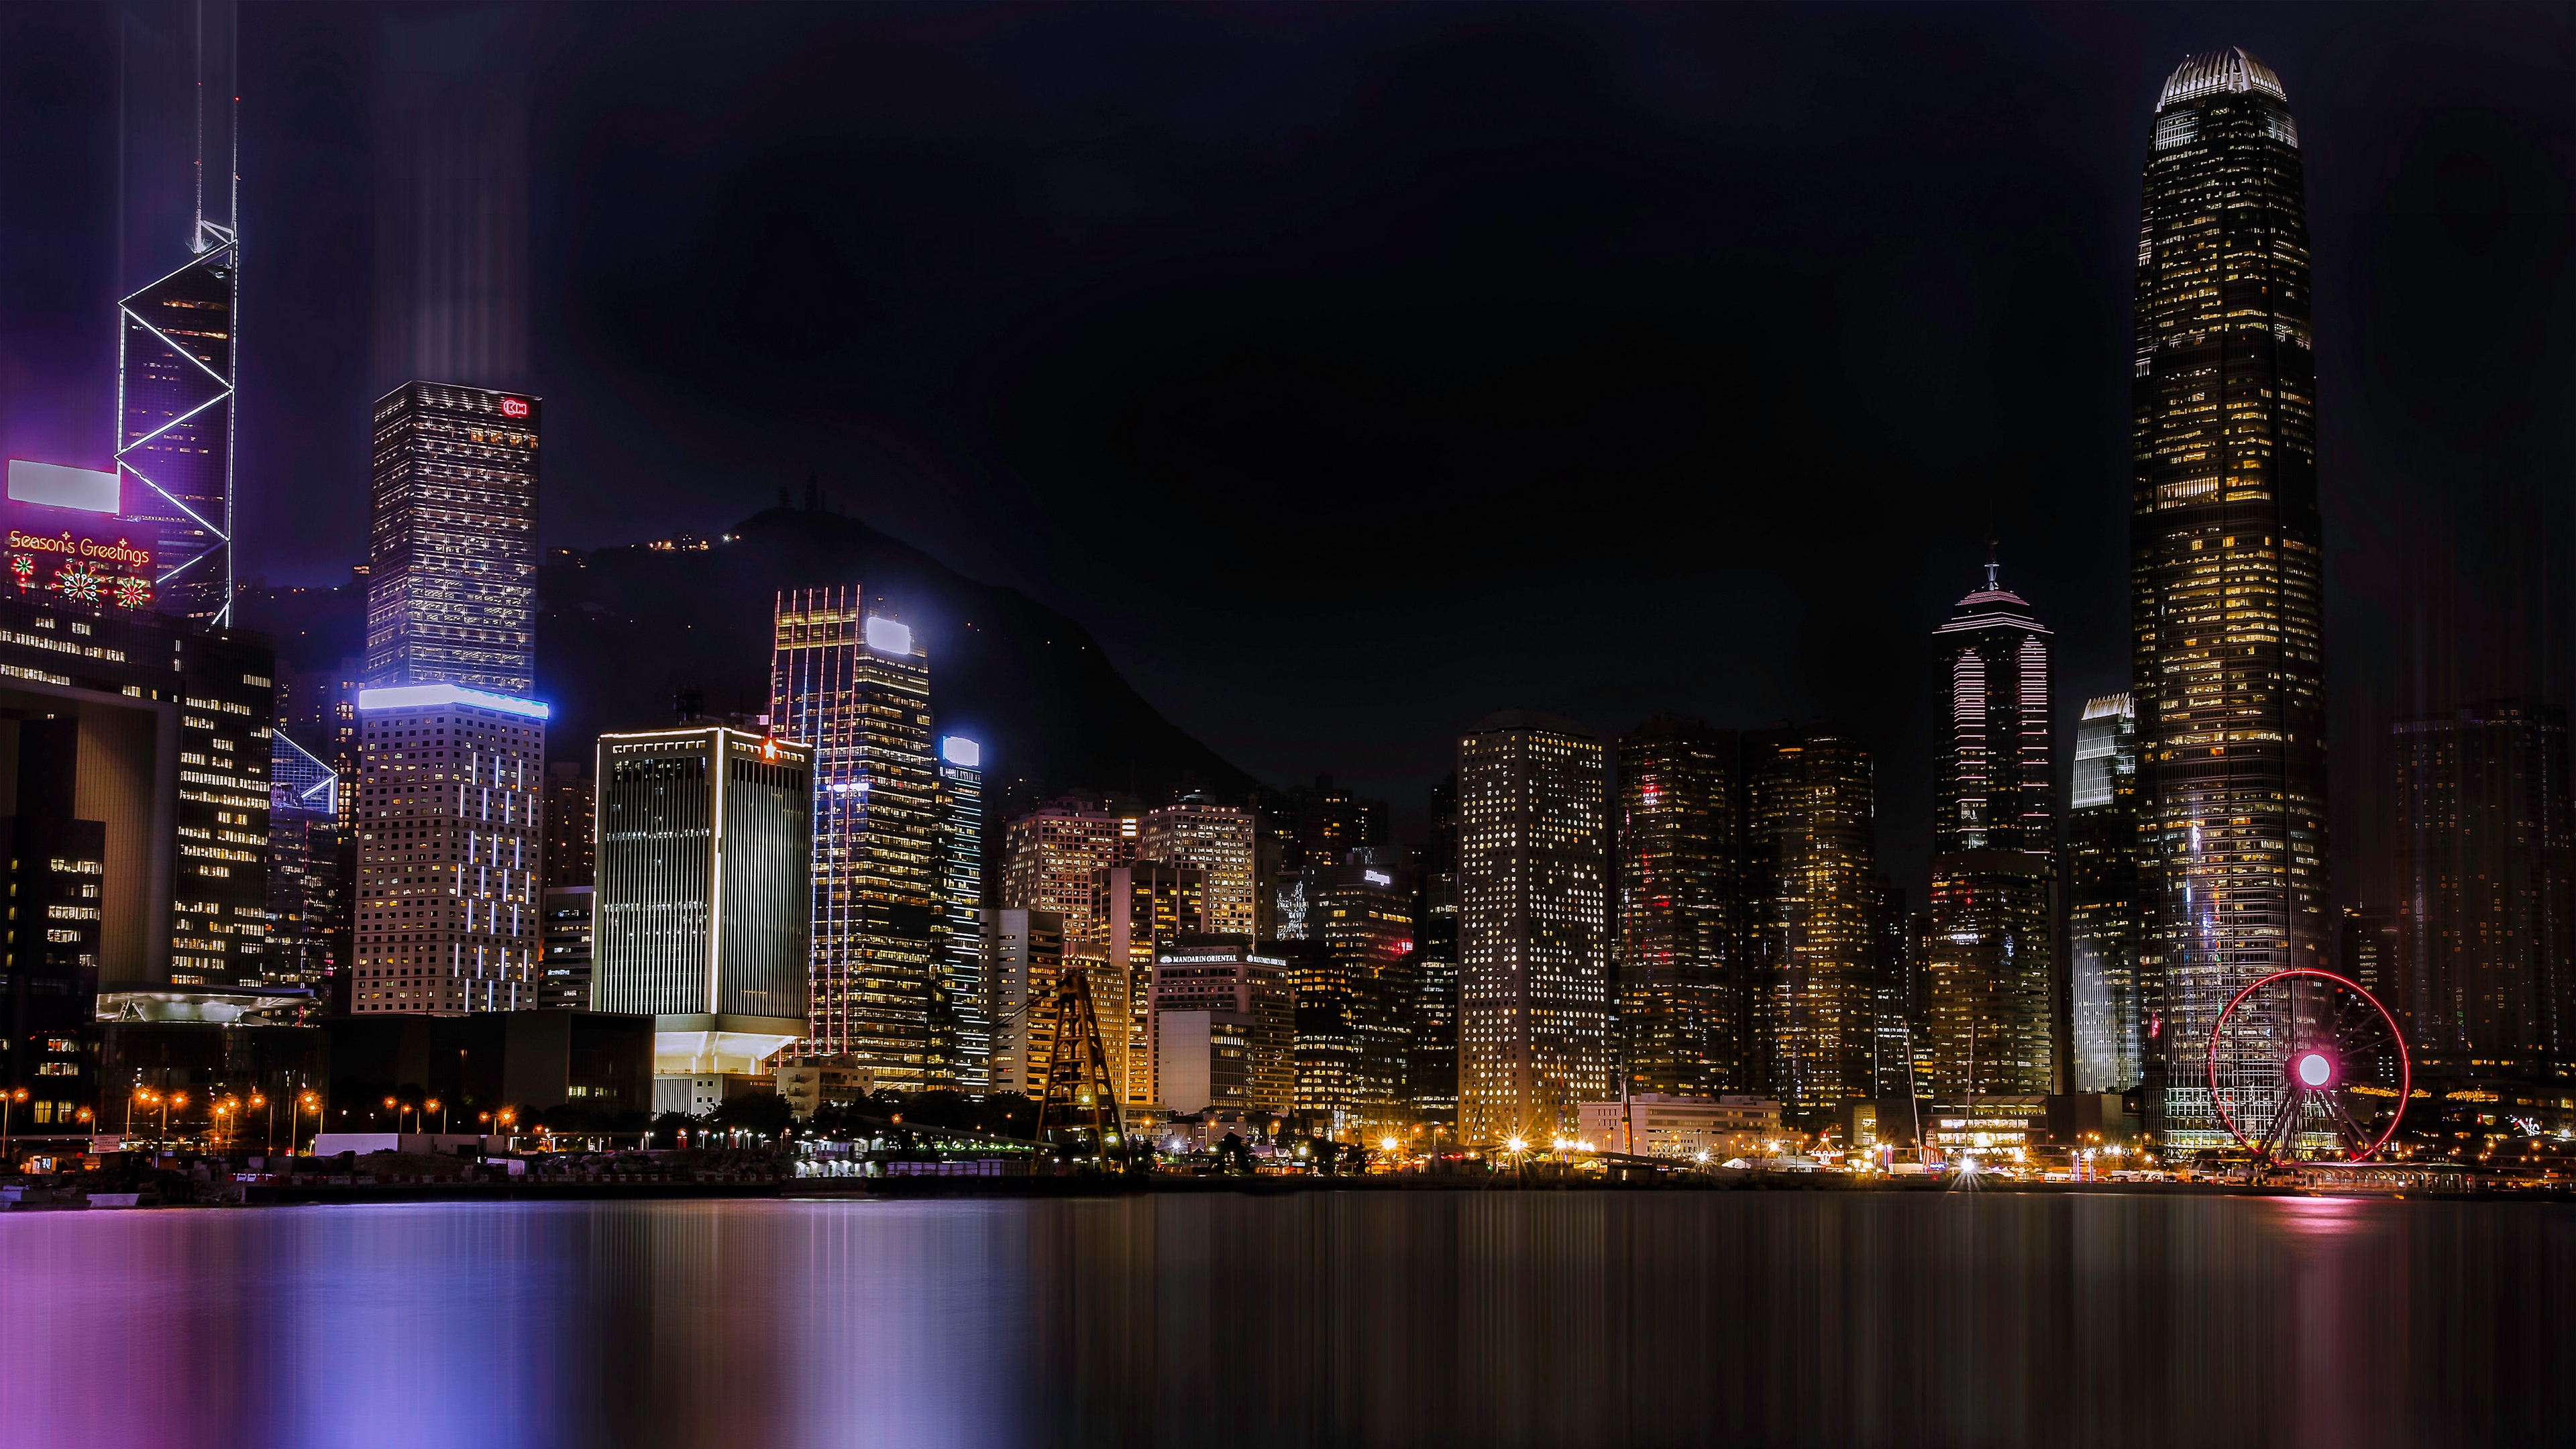 night city skyscrapers beach 4k 1538068200 - night city, skyscrapers, beach 4k - Skyscrapers, night city, Beach